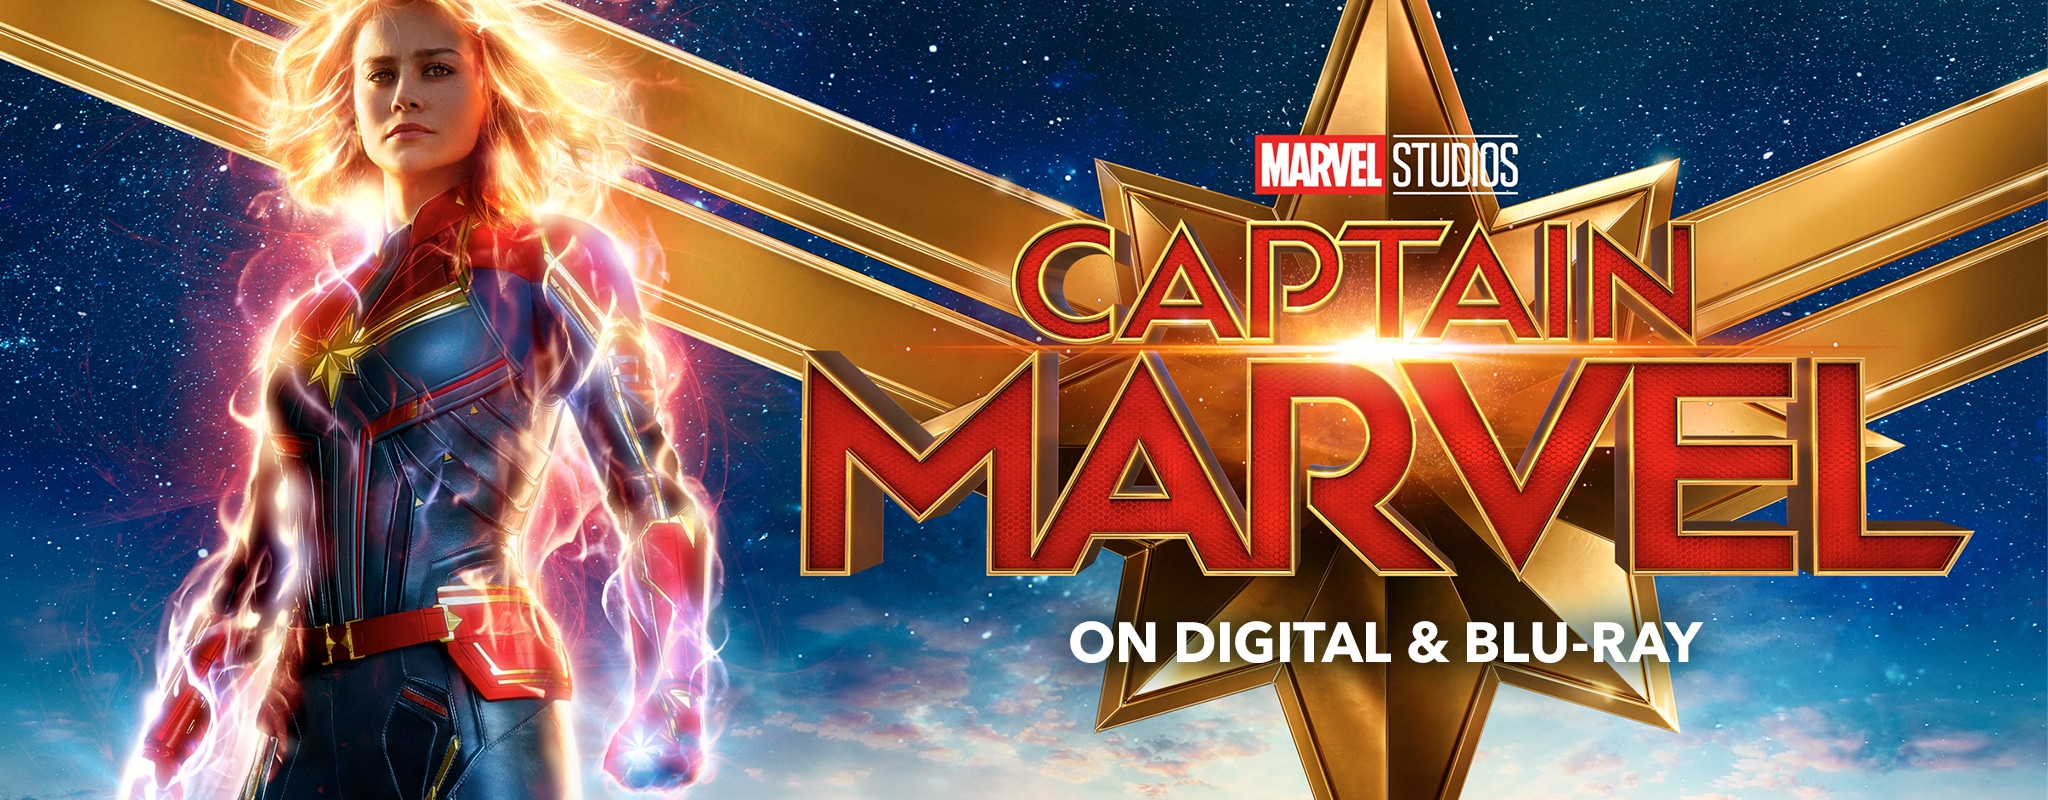 Marvel Studios - Captain Marvel - On Digital & Blu-ray